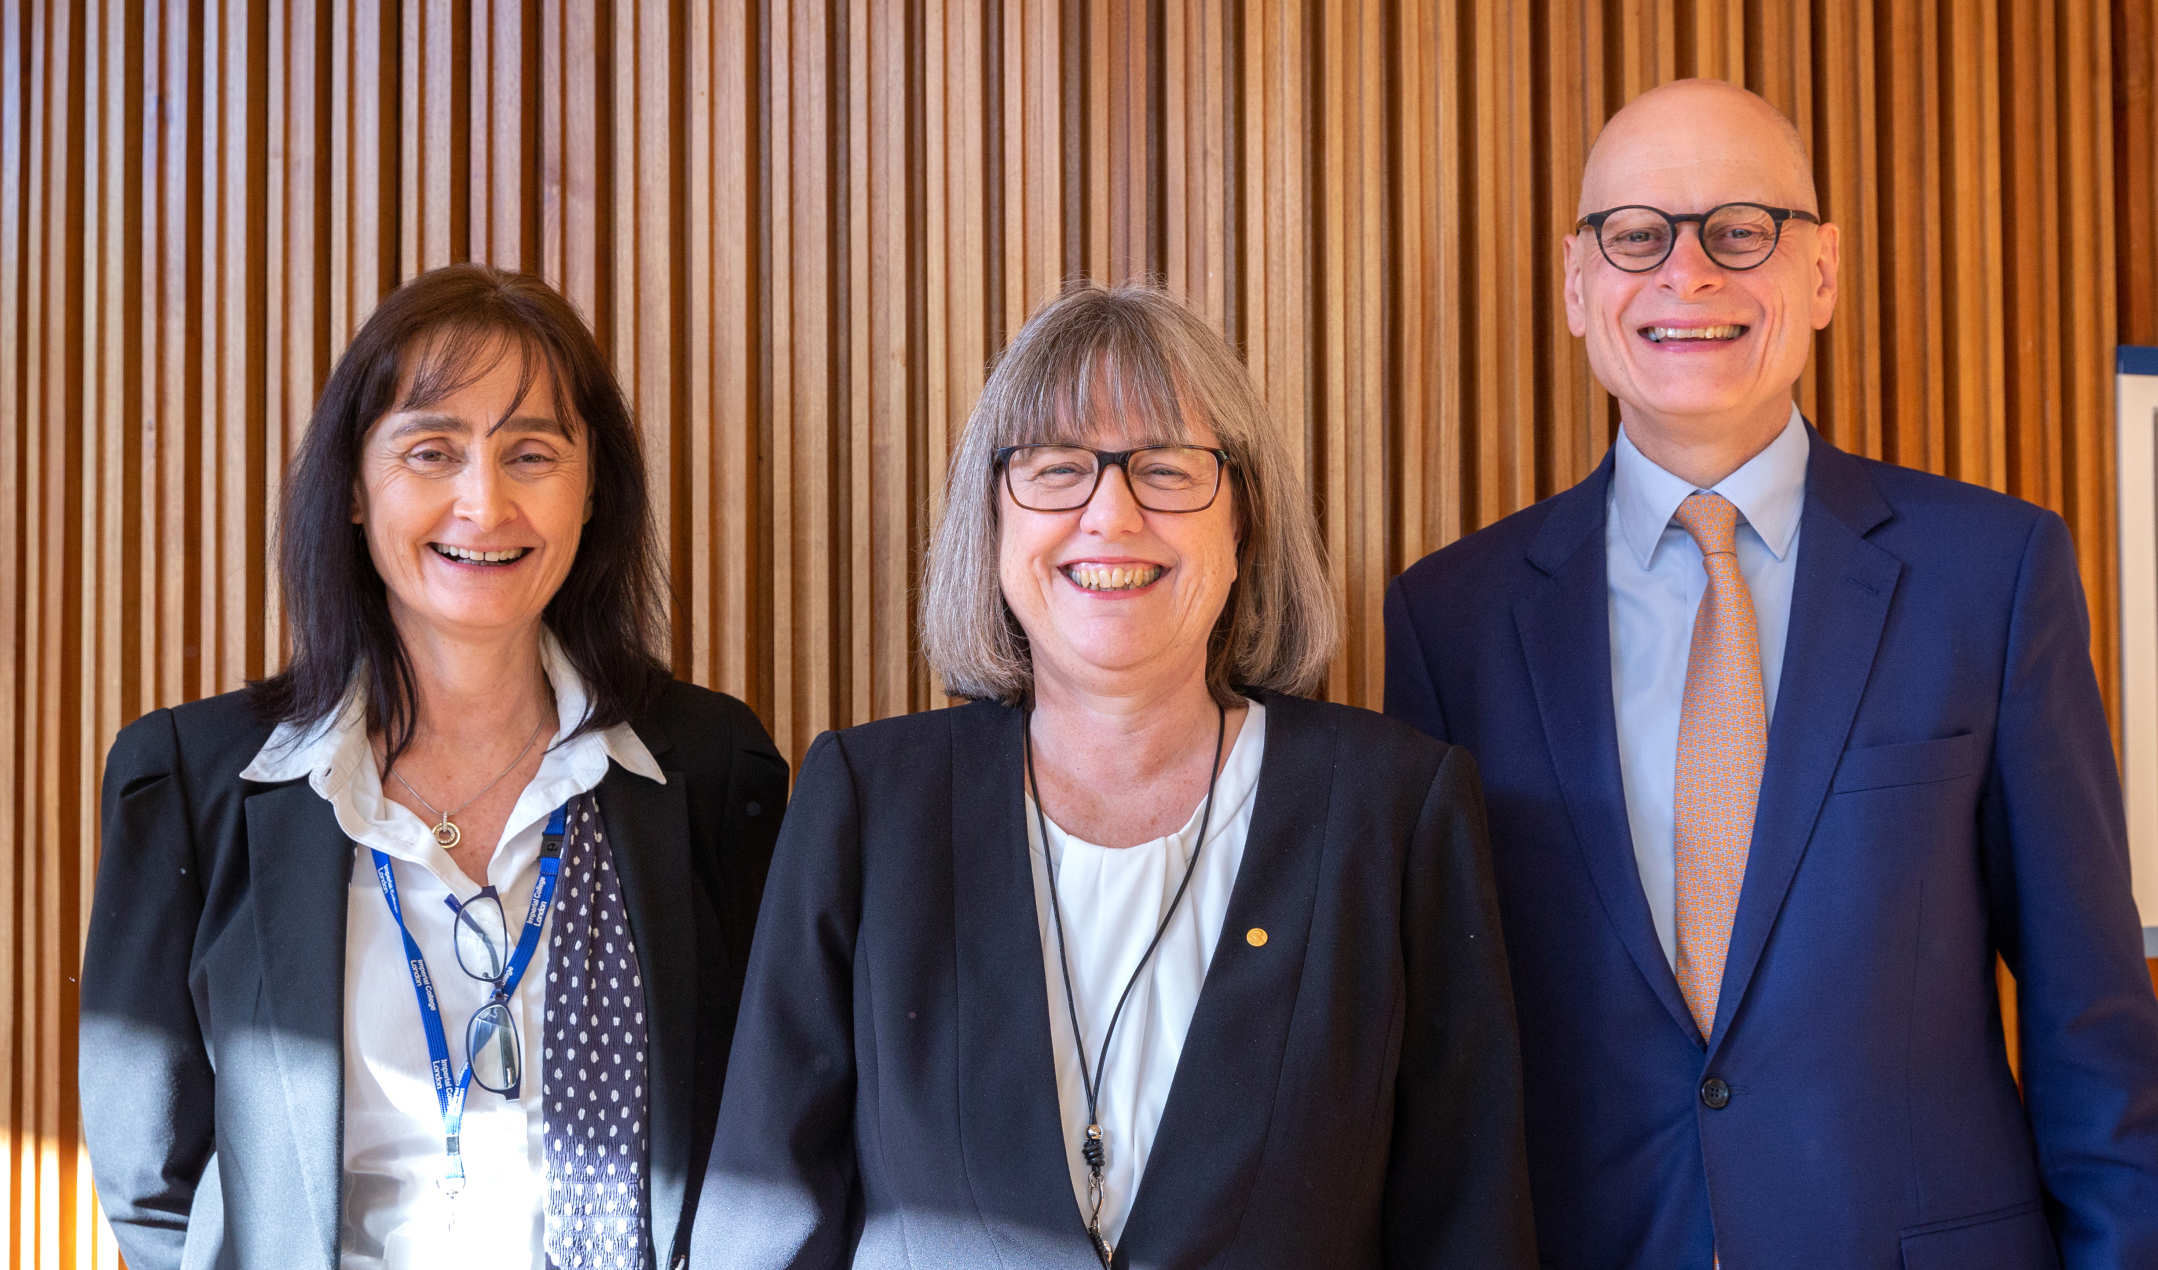 Prof Ian Walmsley with Prof Michele Dougherty and Prof Donna Strickland